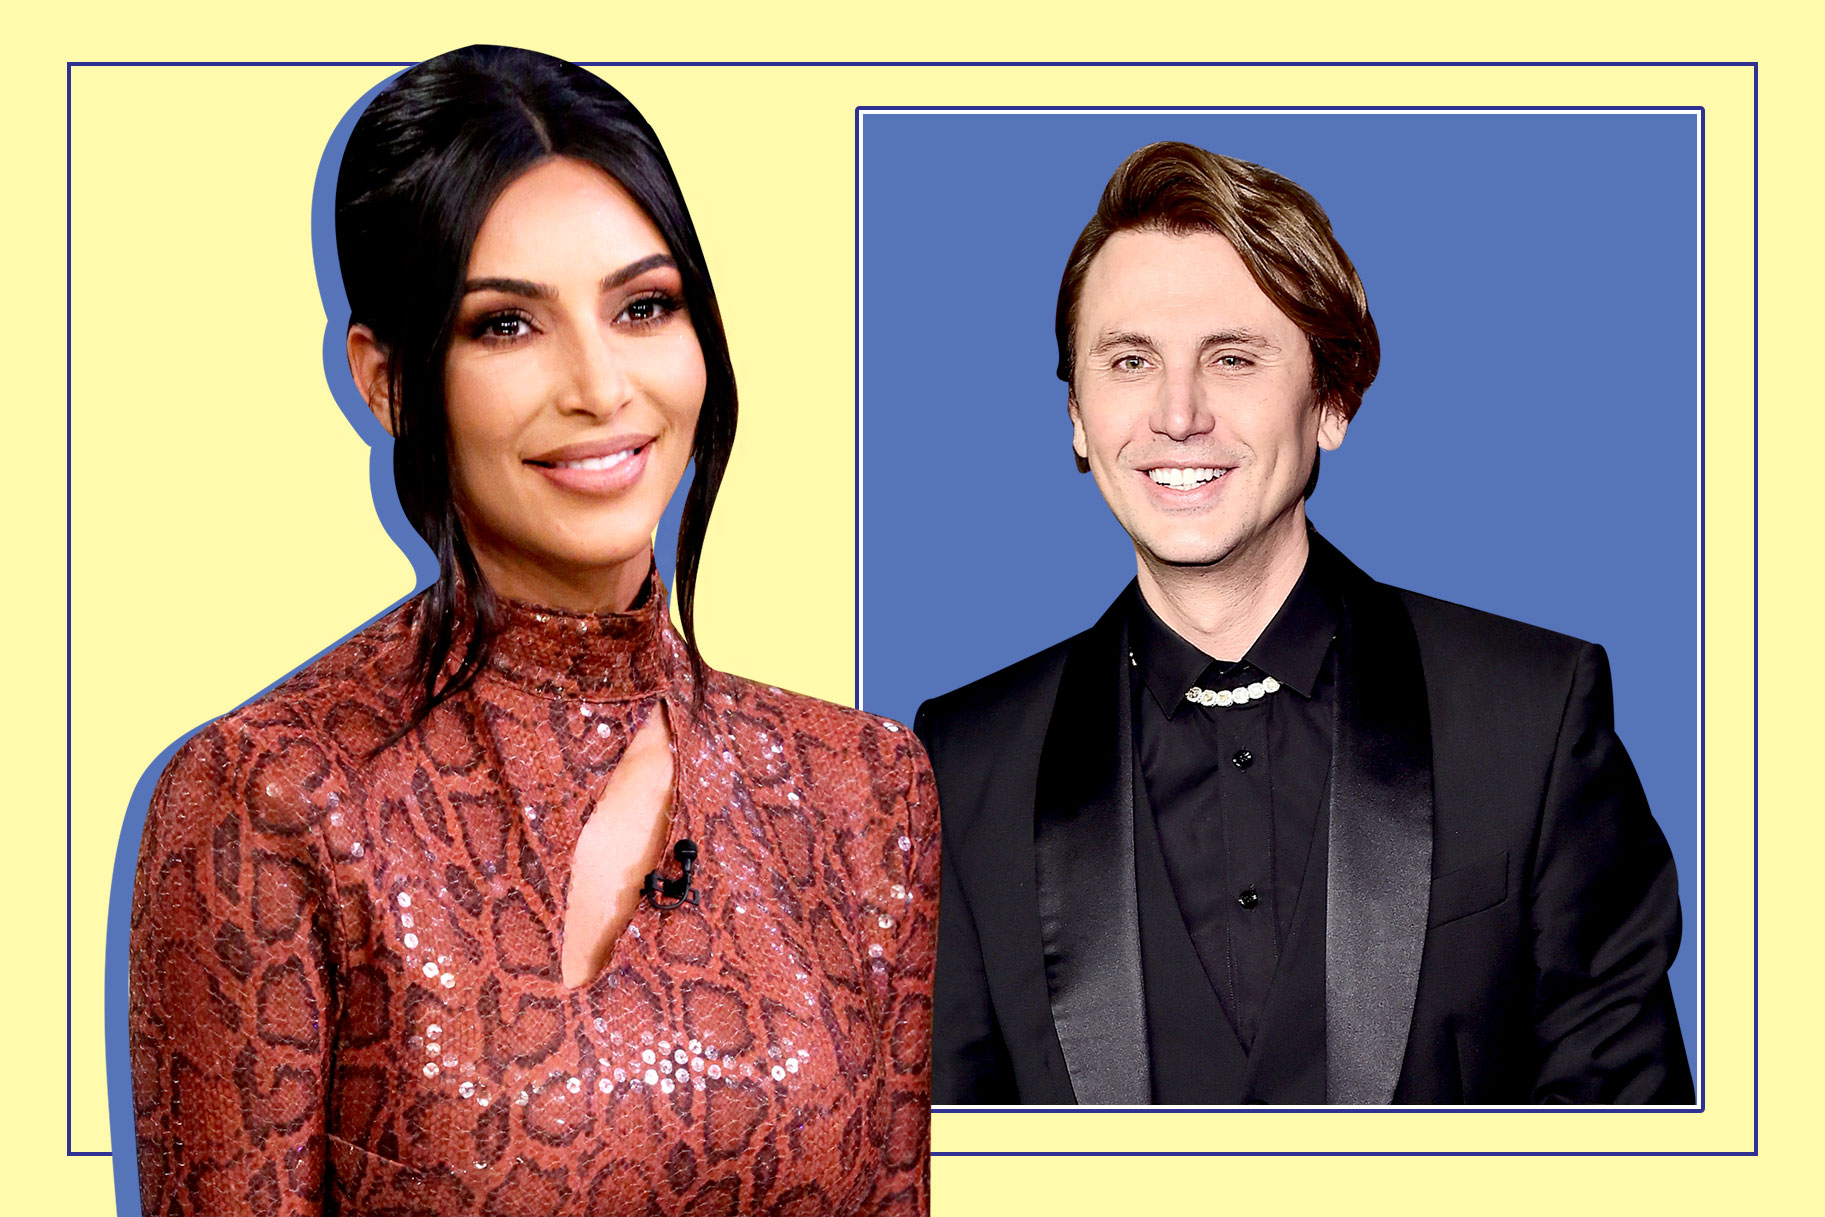 Kim Kardashian and Jonathan Cheban aka Foodgod